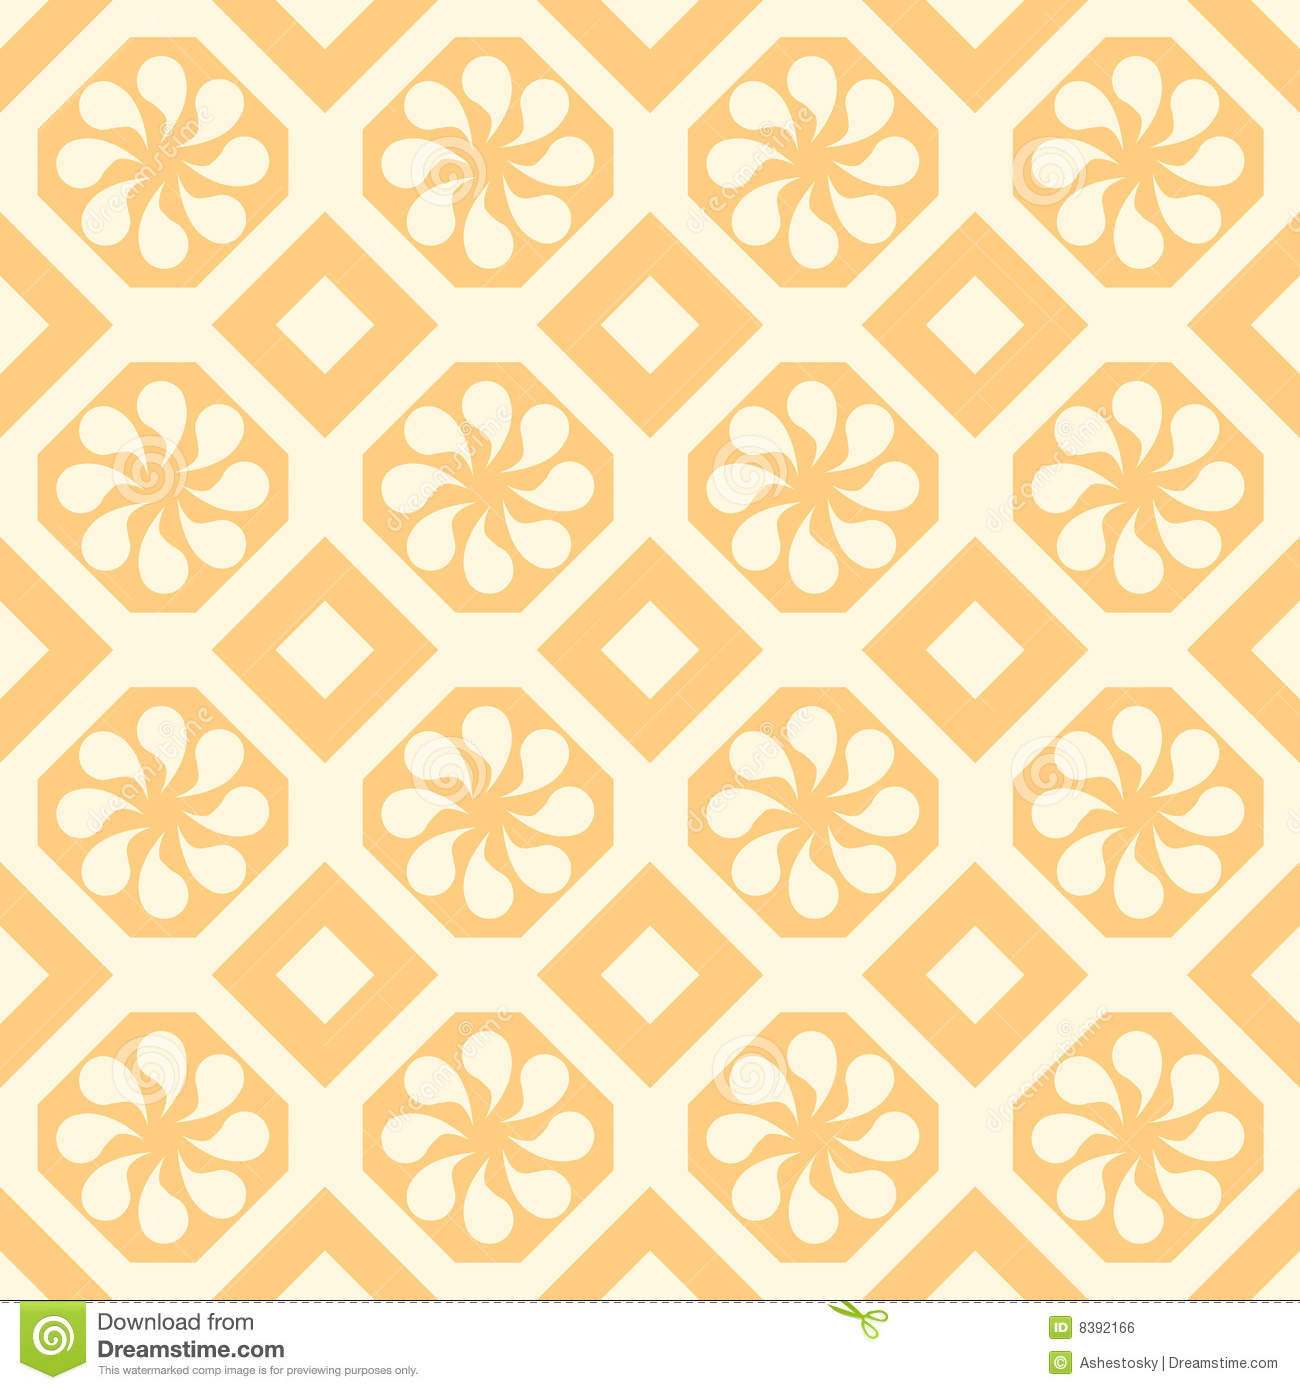 Wallpaper For Kitchen Fabric Tile Wallpaper Texture Kitchen Royalty Free Stock Image